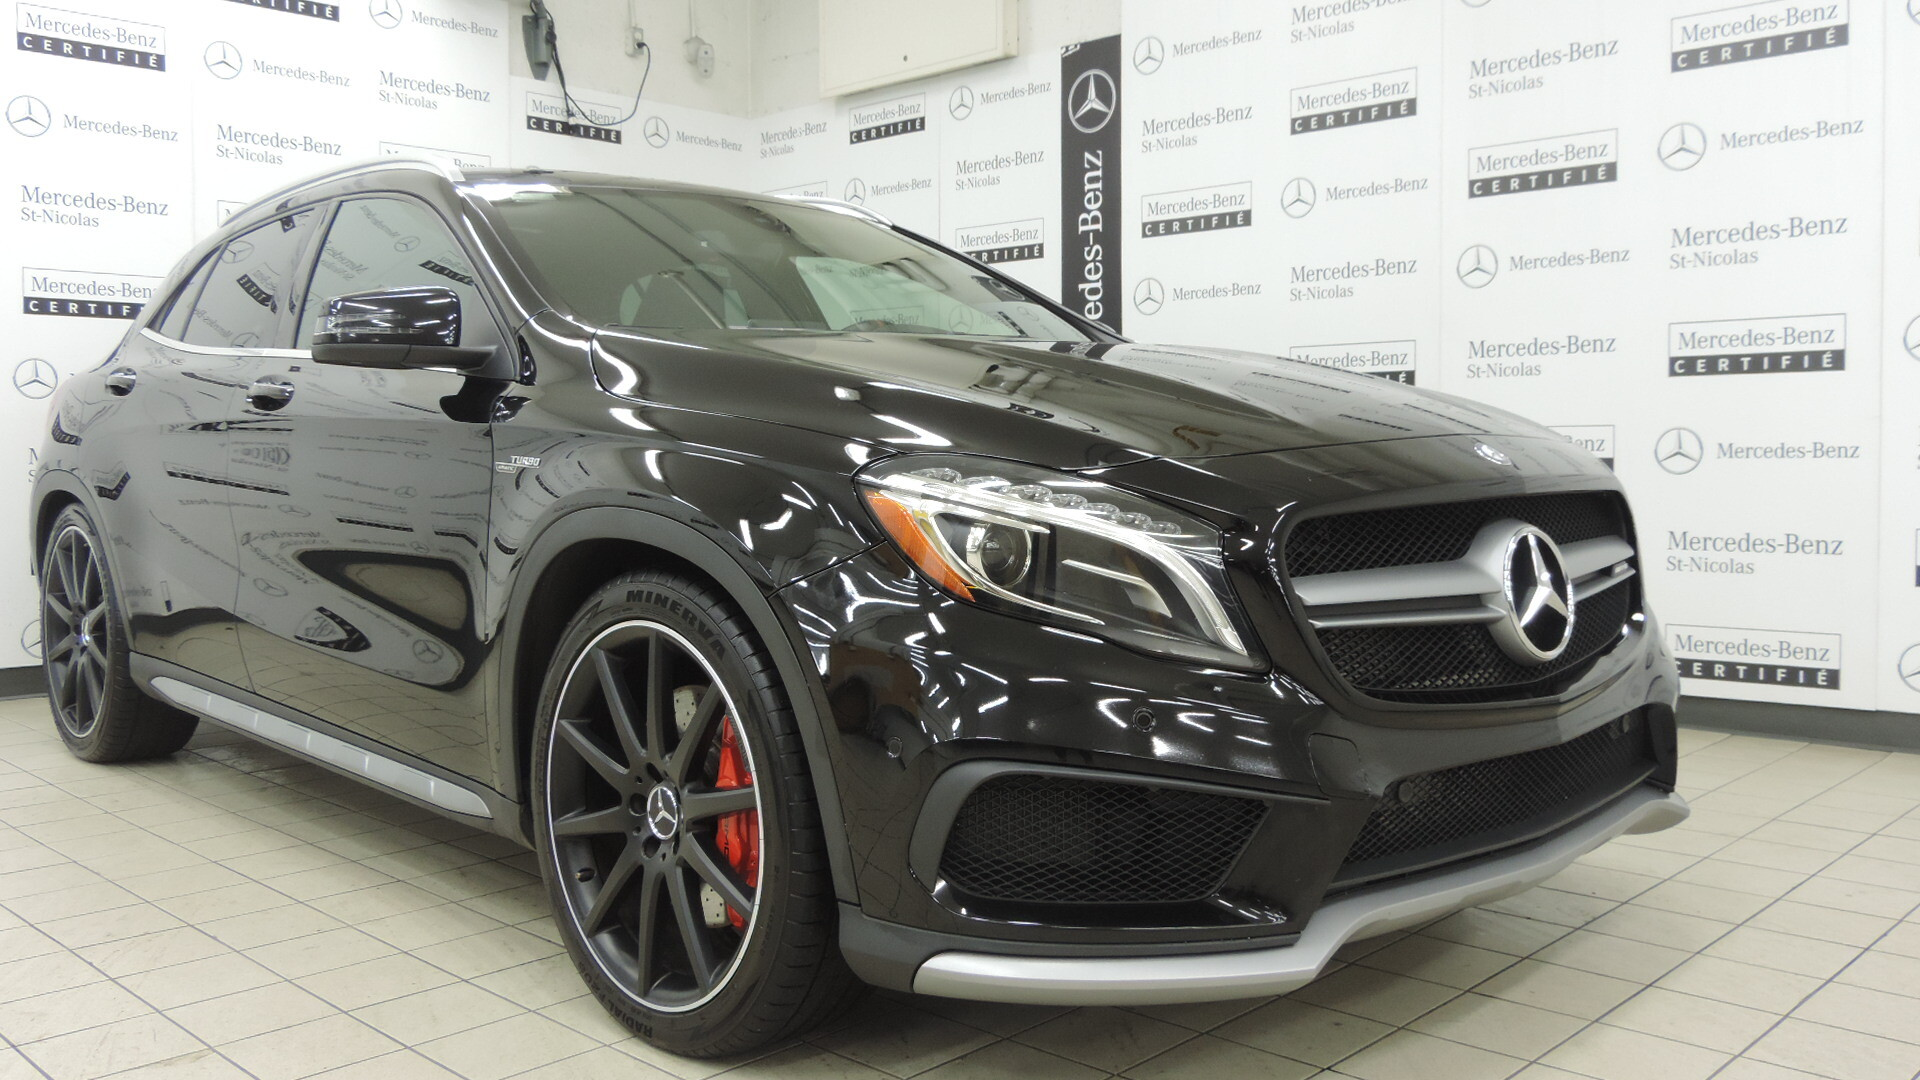 2017 Amg Gla 45 Mercedes Benz >> Certified Pre Owned 2017 Mercedes Benz Gla45 Amg Suv